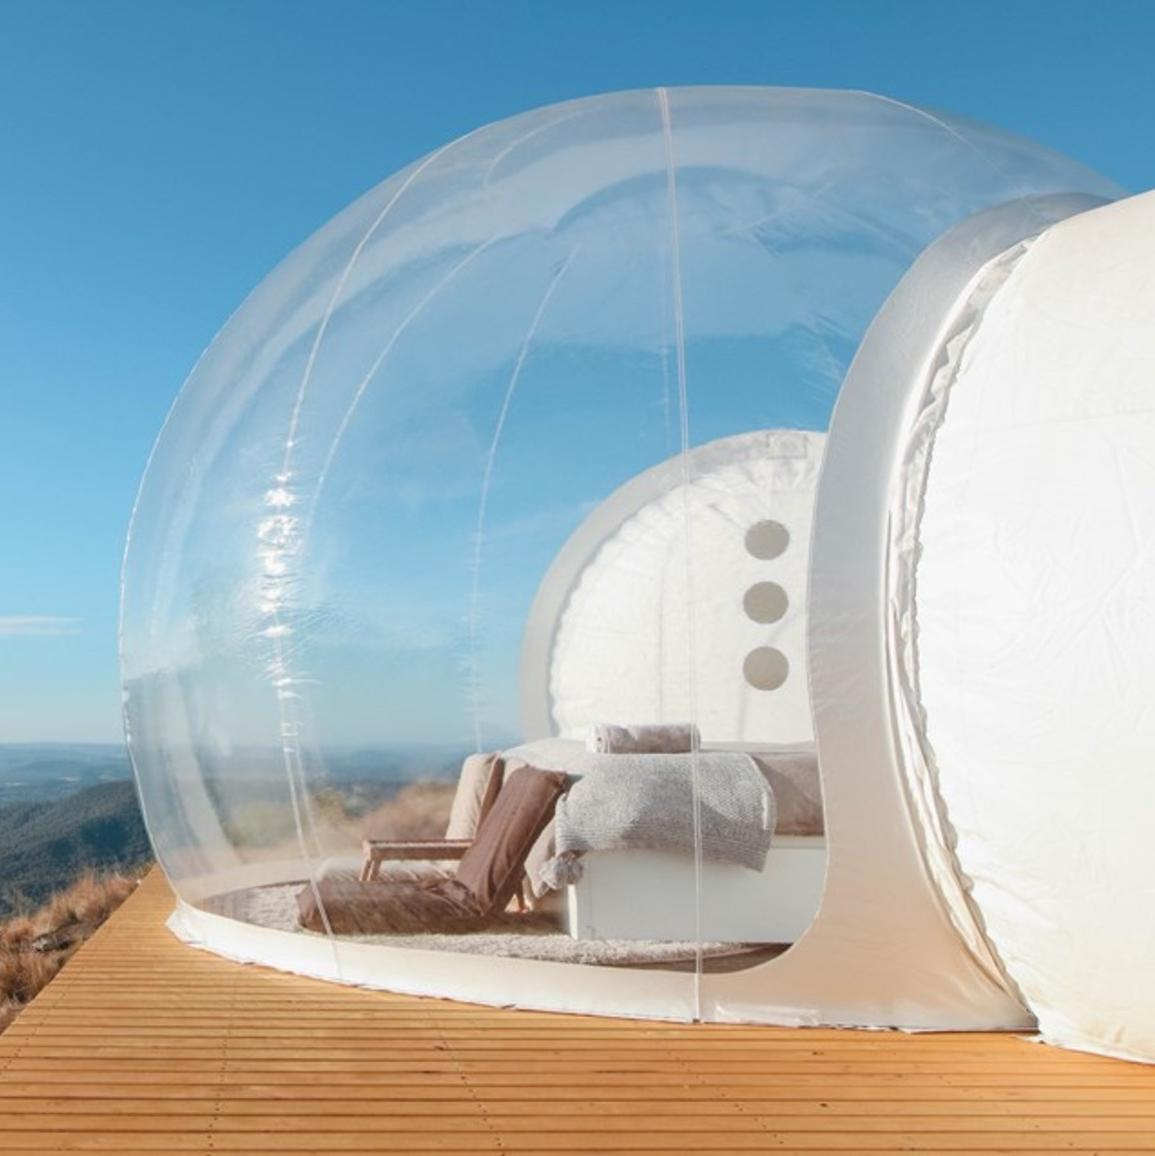 Bubble tents have arrived in Australia